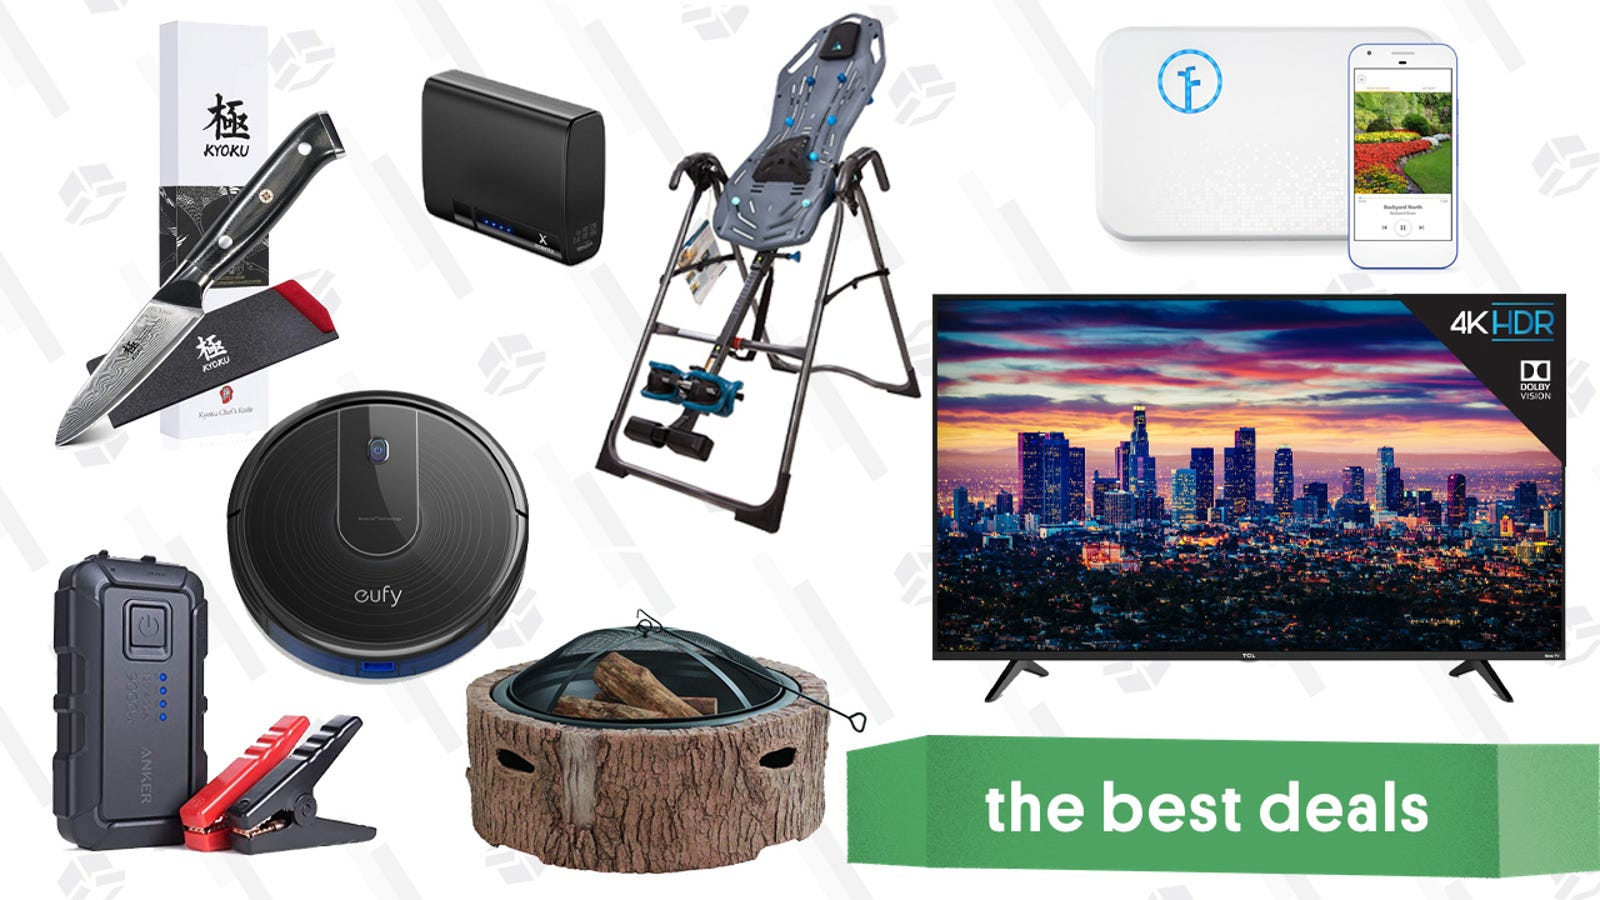 Tuesday's Best Deals: Posture Corrector, Fresh Scallops, Dolby Vision TVs, and More